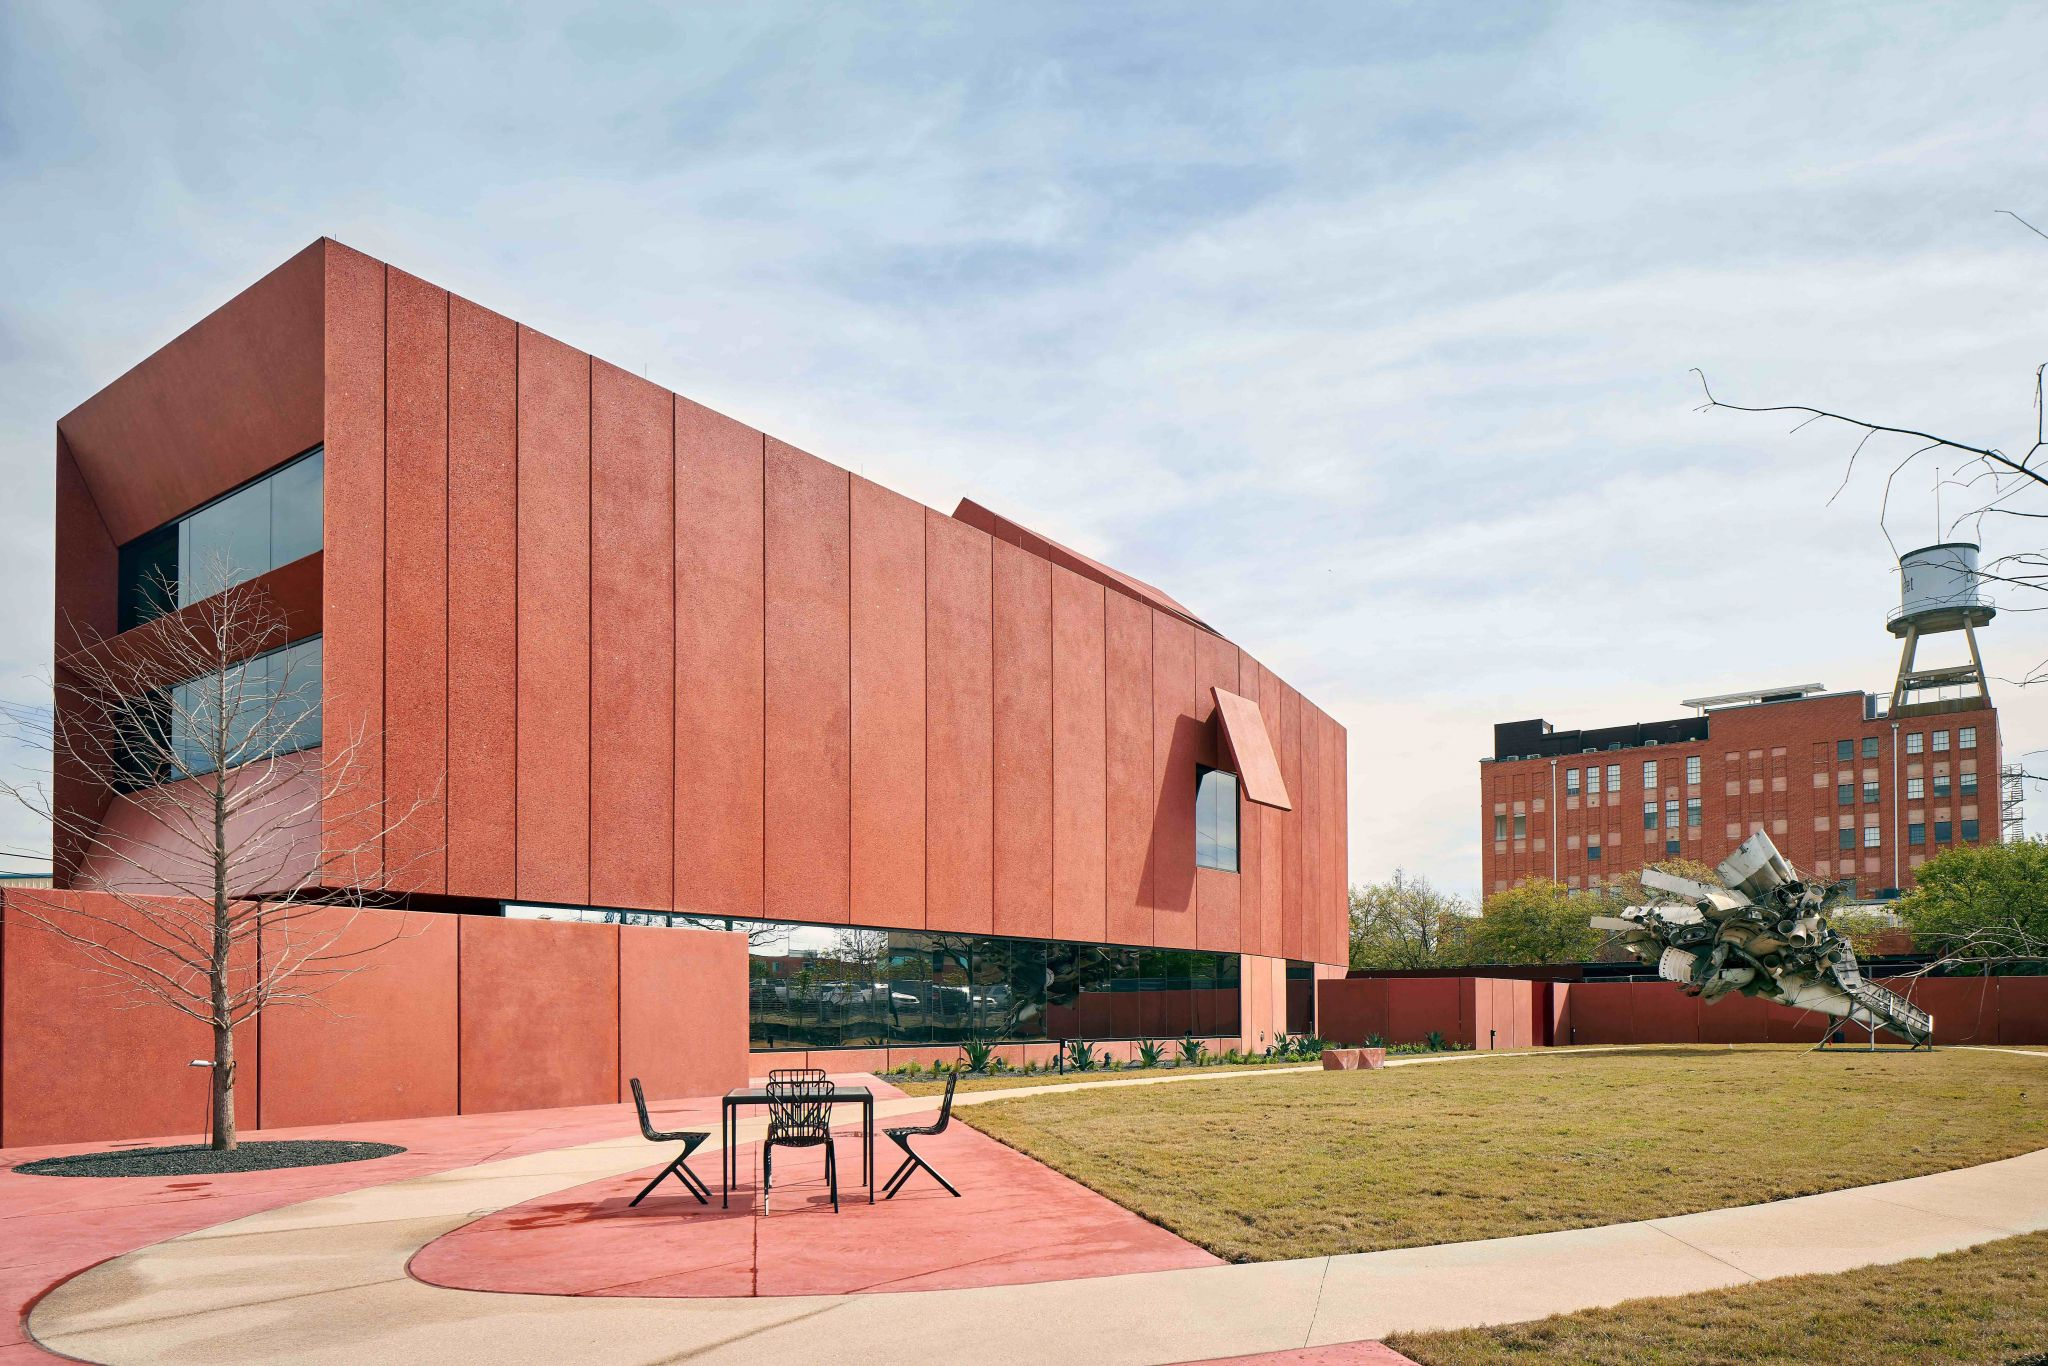 Ruby City, San Antonio's 'temple for art,' receives international nod ahead of opening